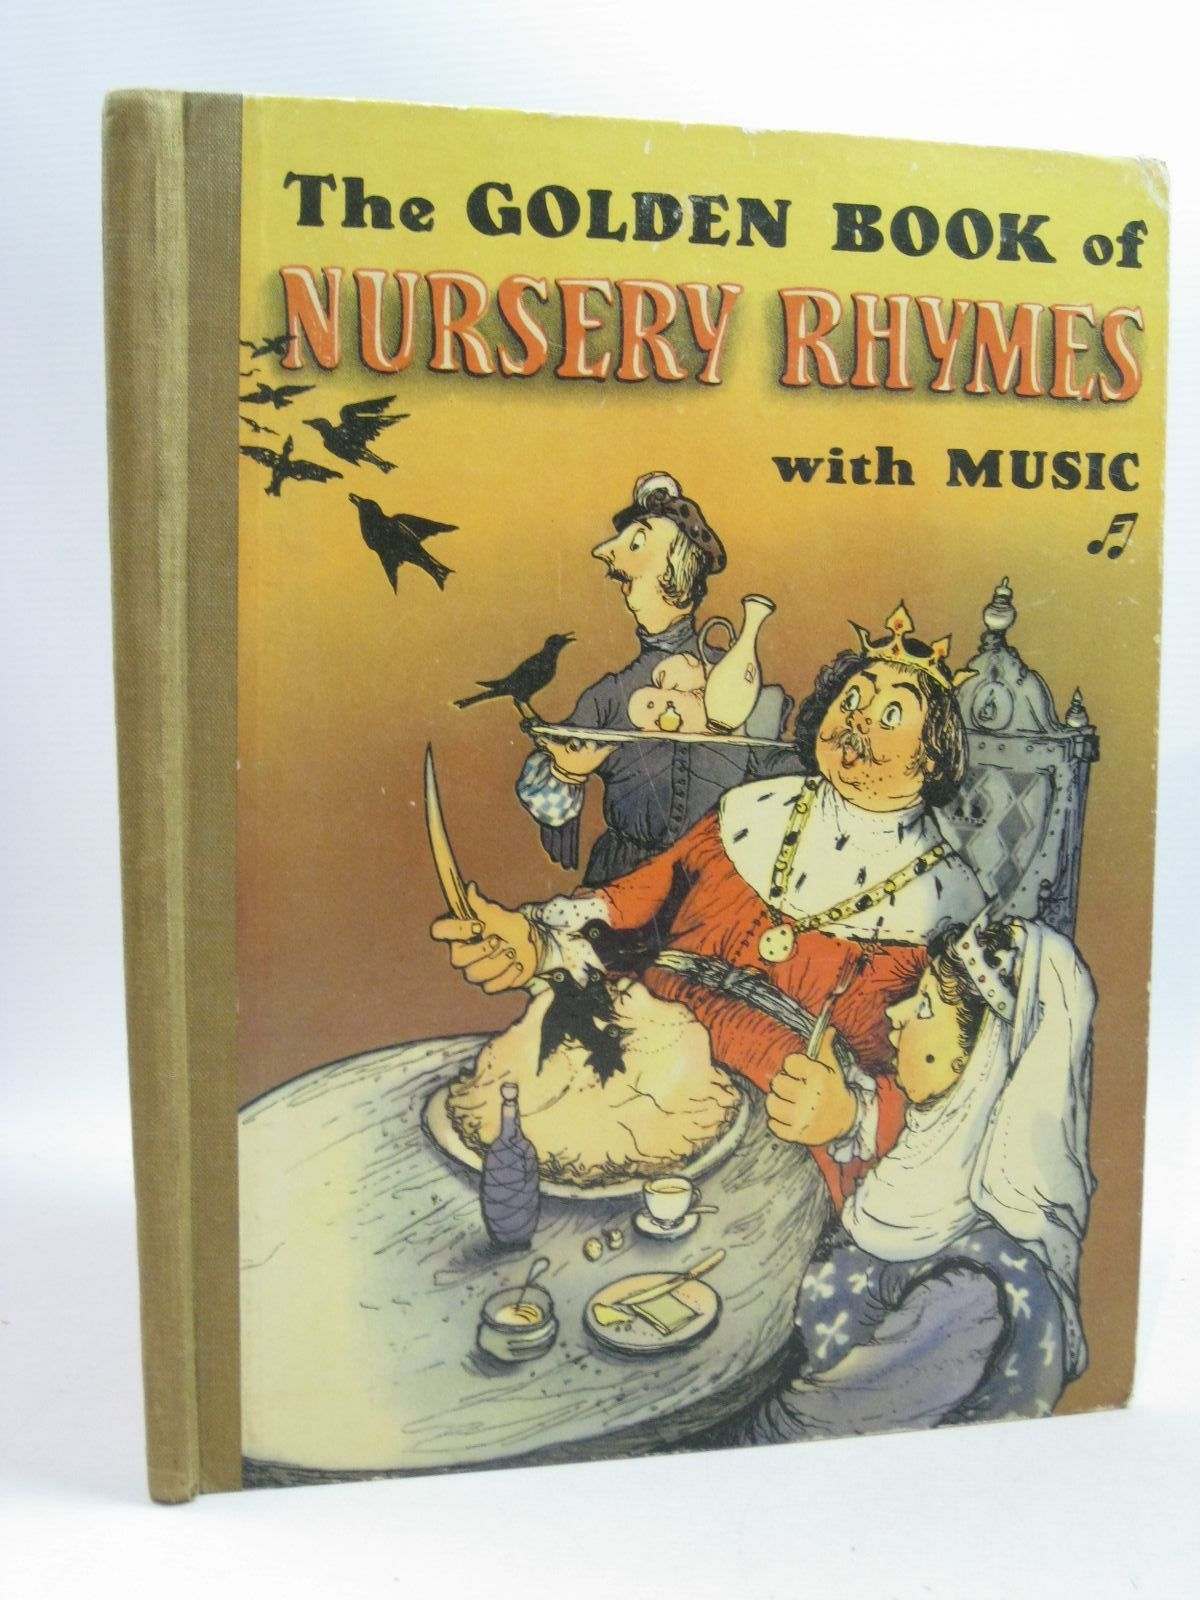 Photo of THE GOLDEN BOOK OF NURSERY RHYMES written by Micklem, T.C. illustrated by Carlton, J.R. published by Blandford Press Ltd. (STOCK CODE: 1504824)  for sale by Stella & Rose's Books